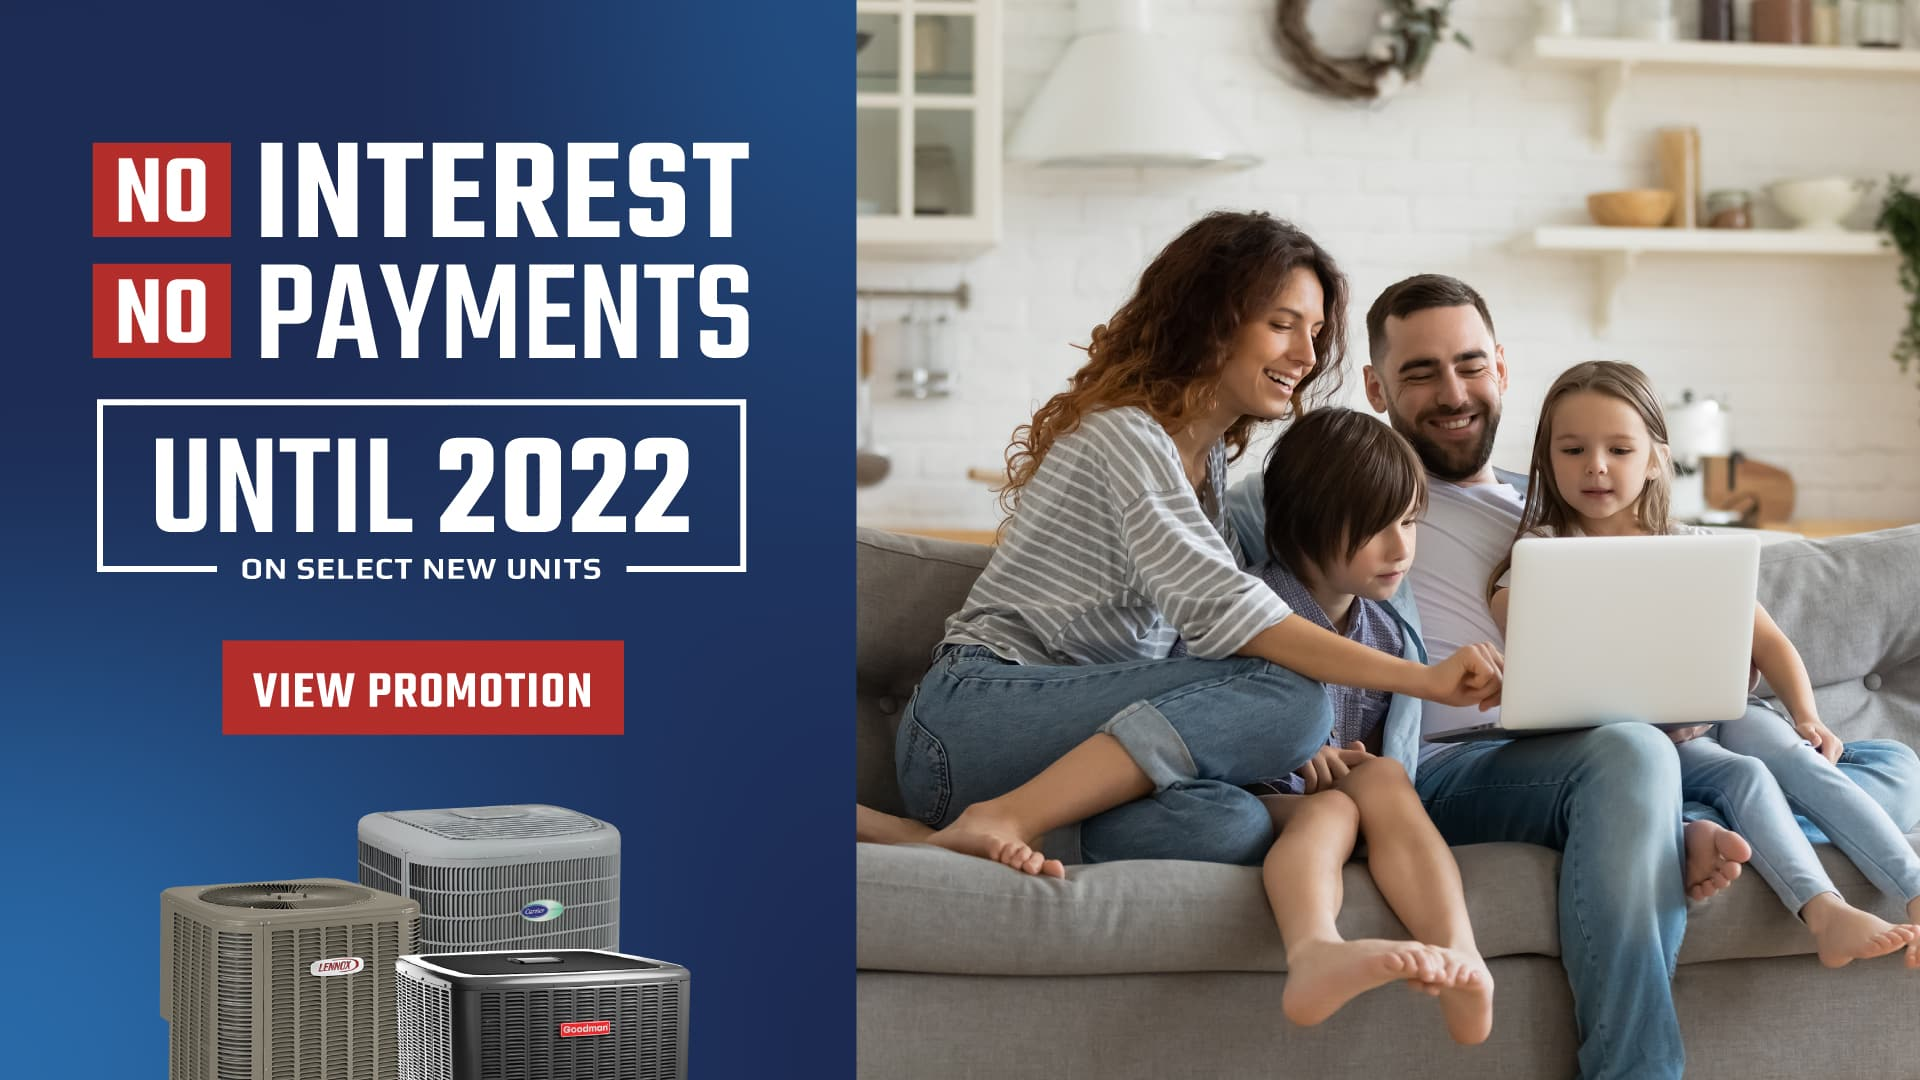 No Interest No Payments Until 2022 on Select A/C Systems. Graphic next to image of family of 4 looking on the computer.